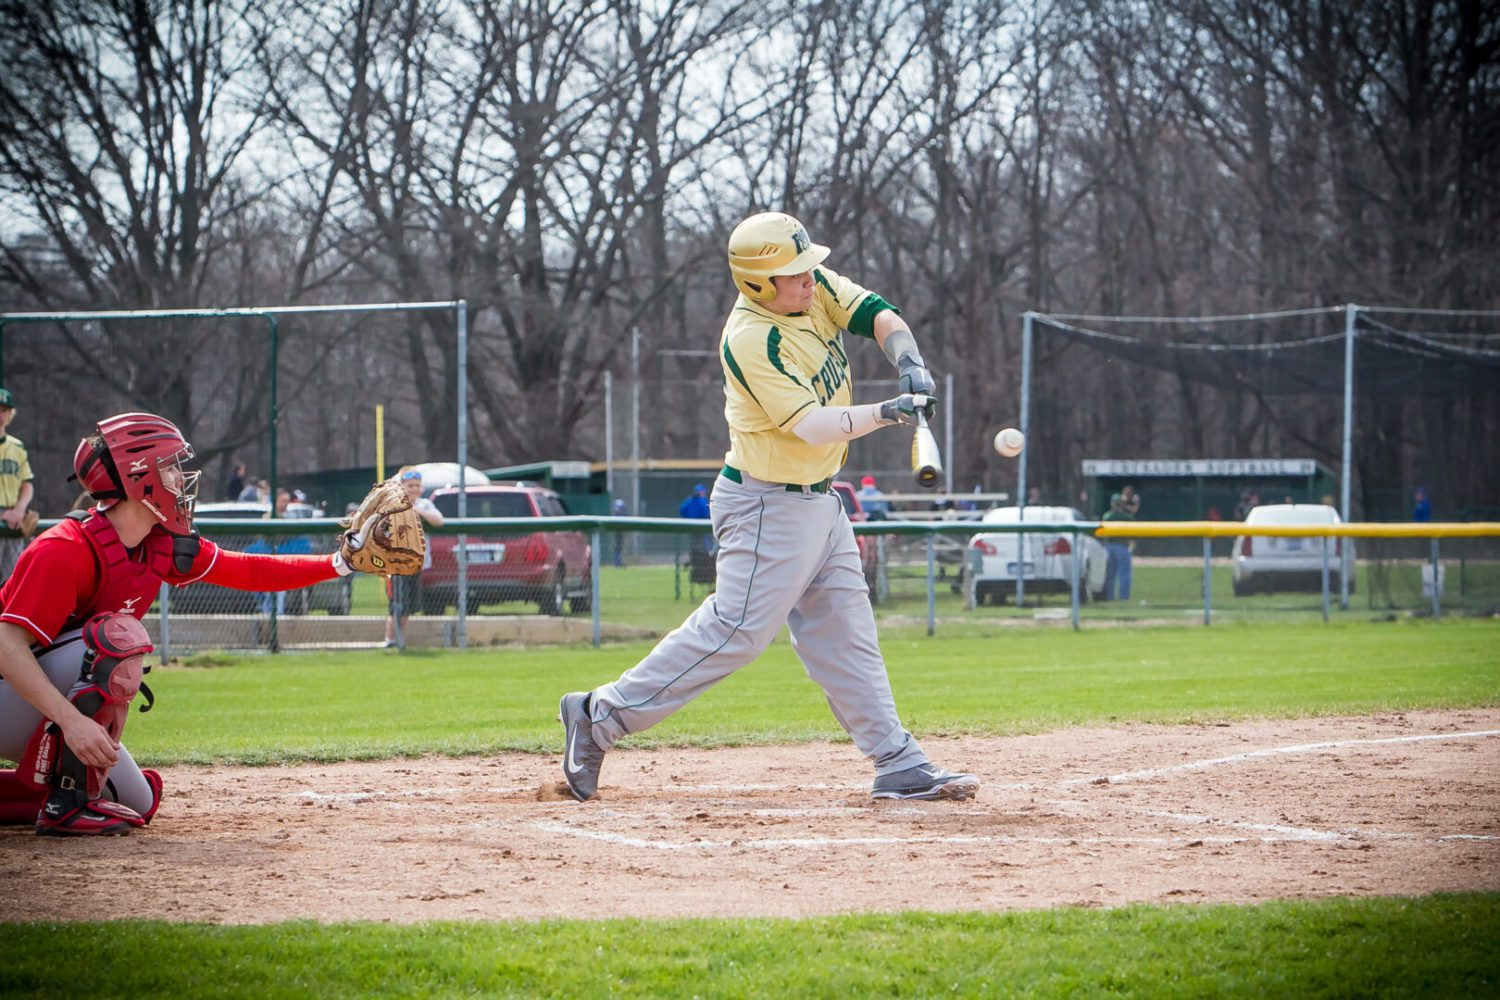 Late run helps Muskegon Catholic top North Muskegon in nonconference baseball game